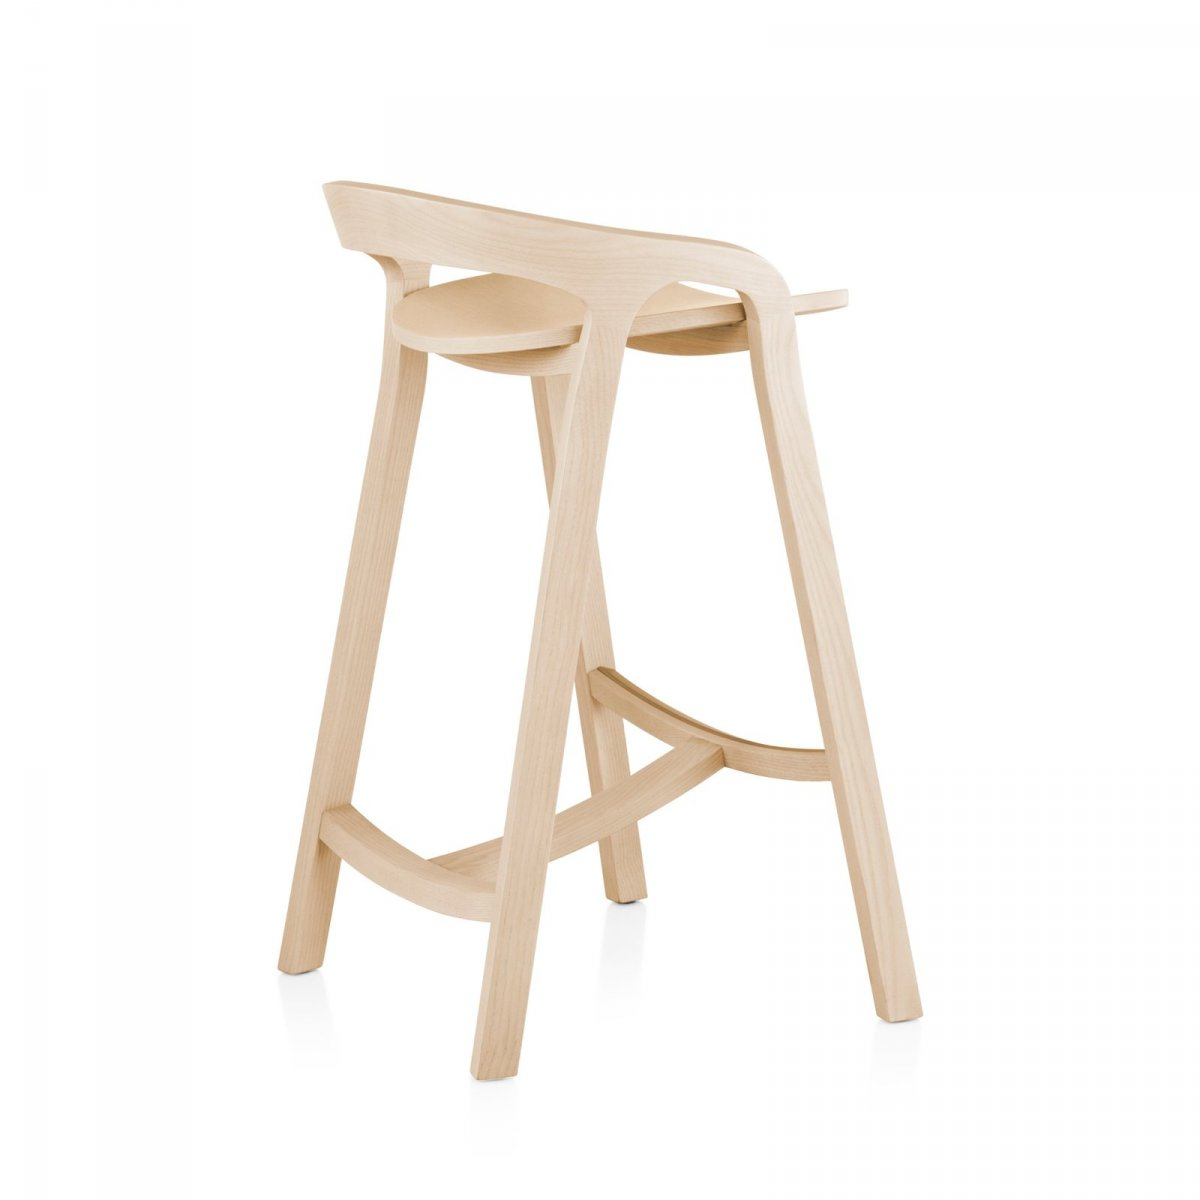 She Said Stool By Studio Nitzan Cohen For Mattiazzi Up